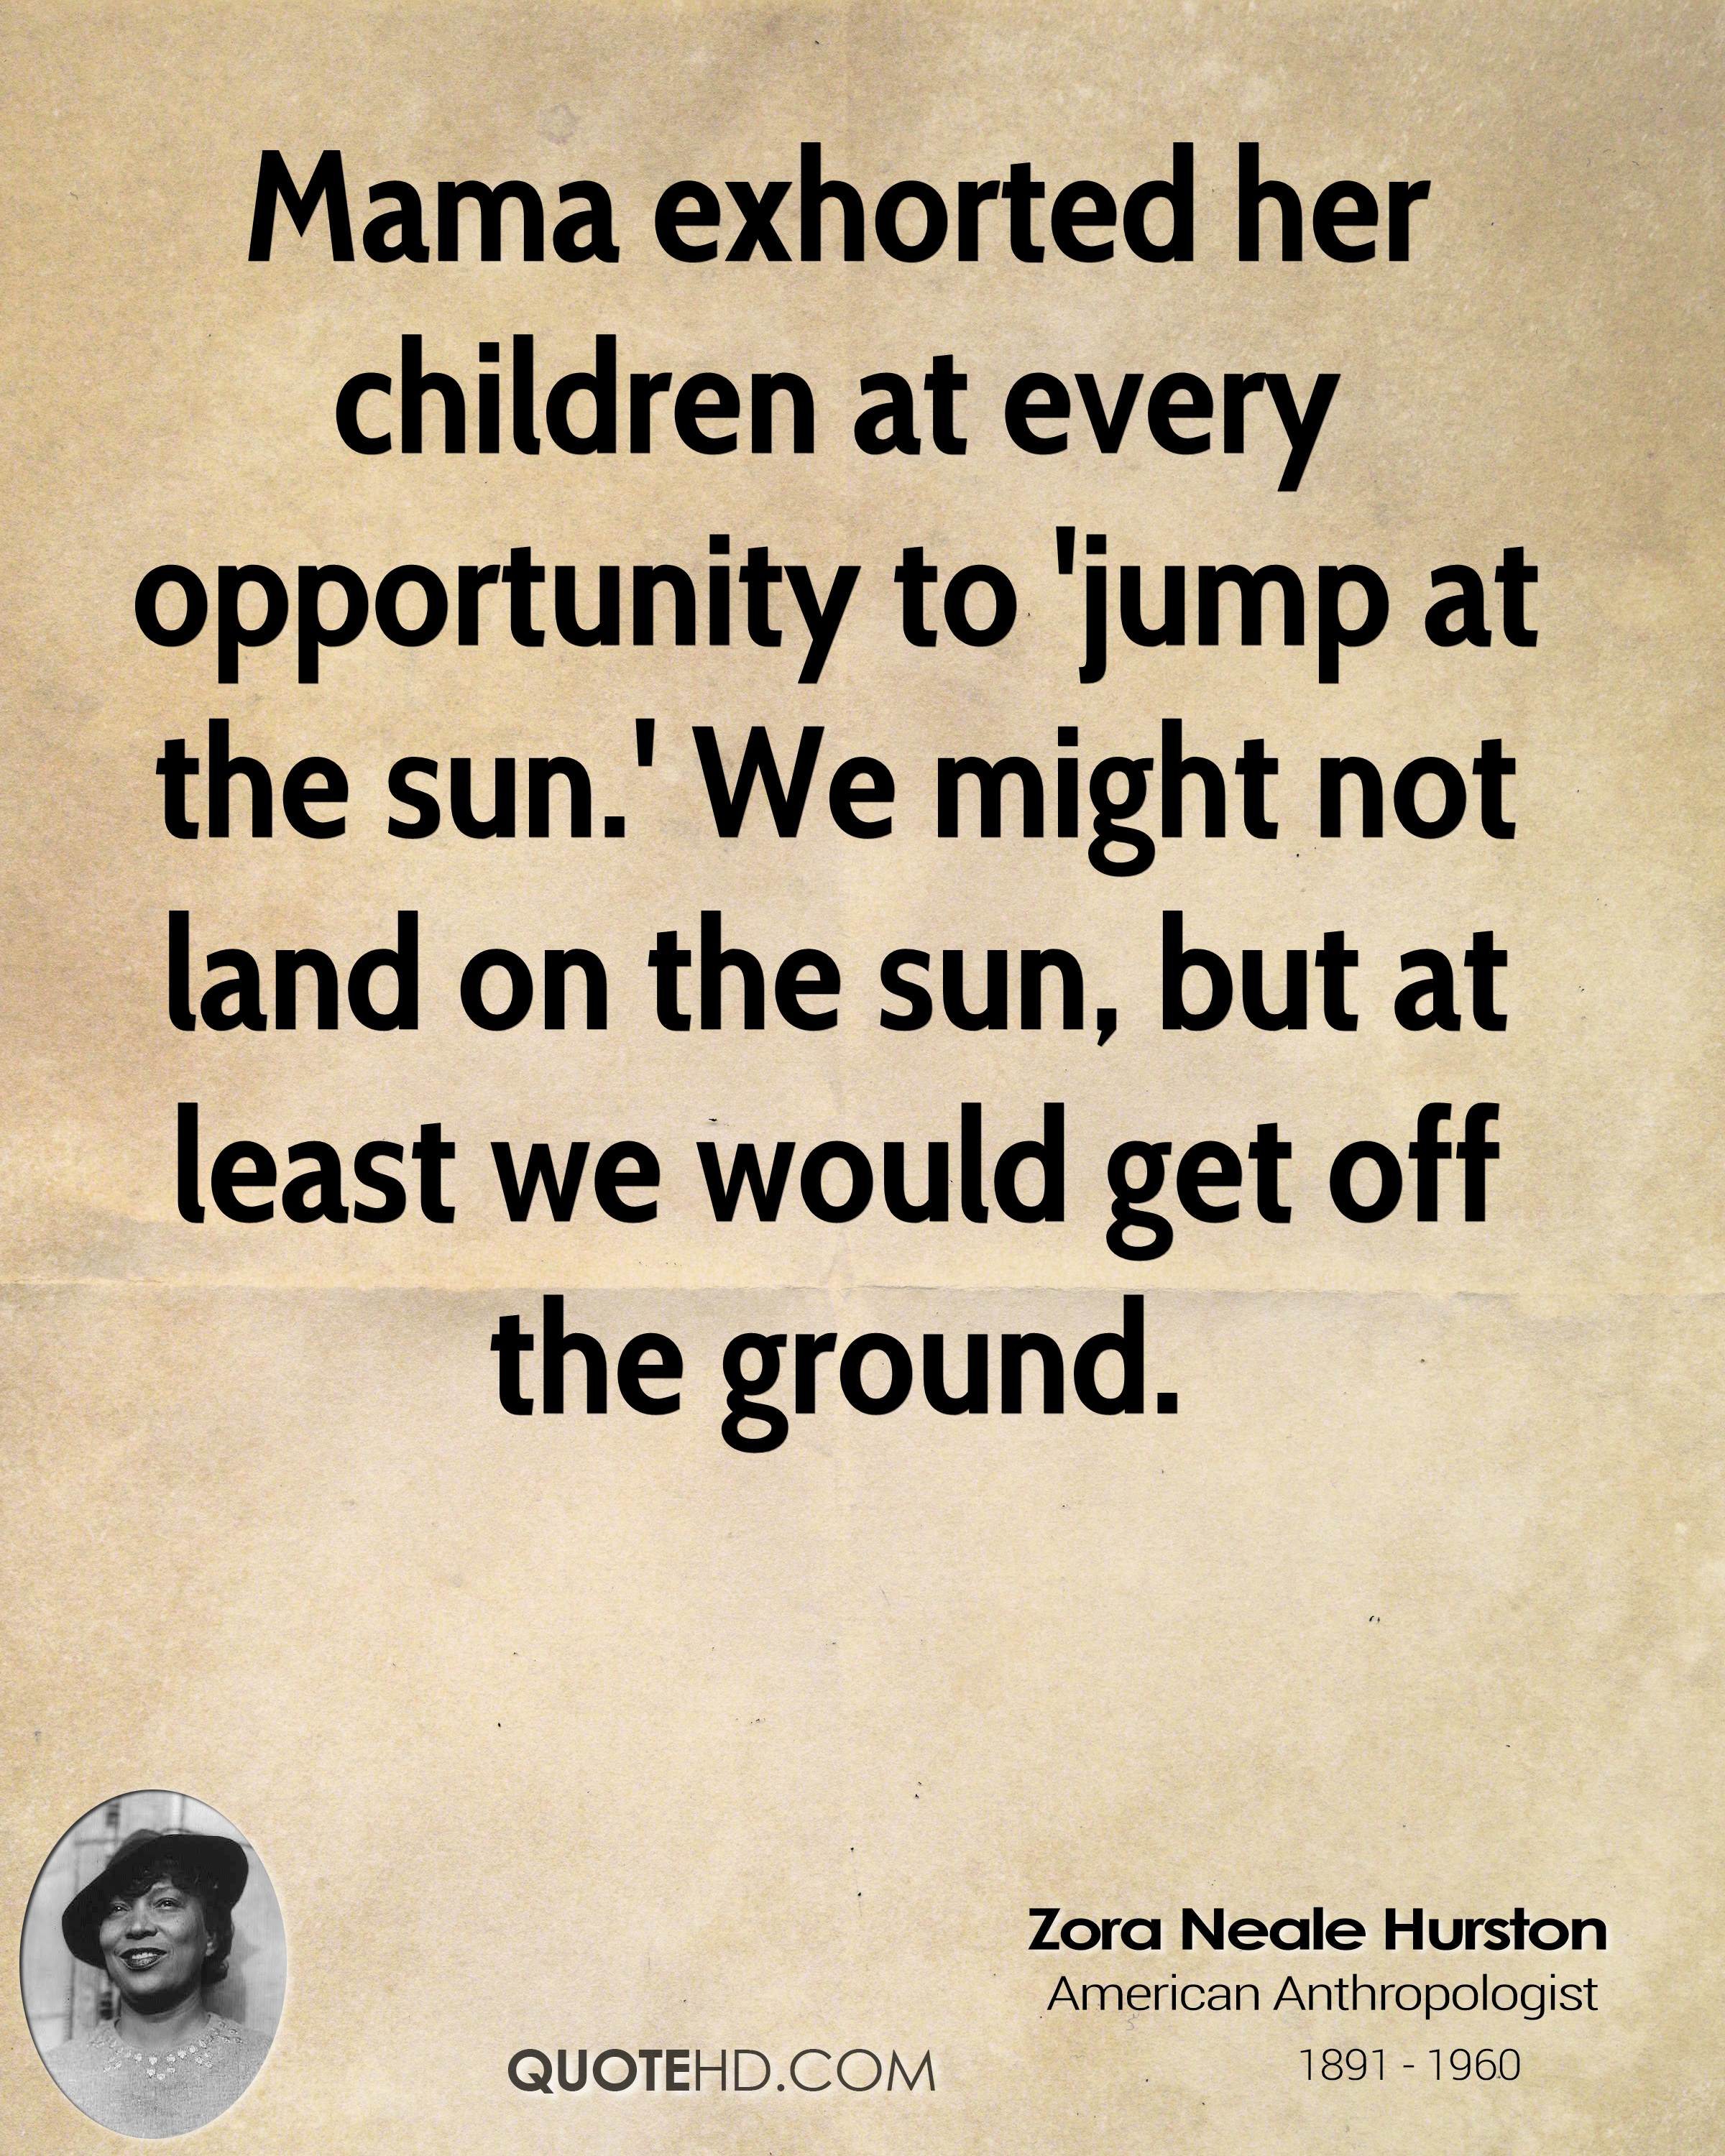 zora neale hurston quotes quotehd mama exhorted her children at every opportunity to jump at the sun we